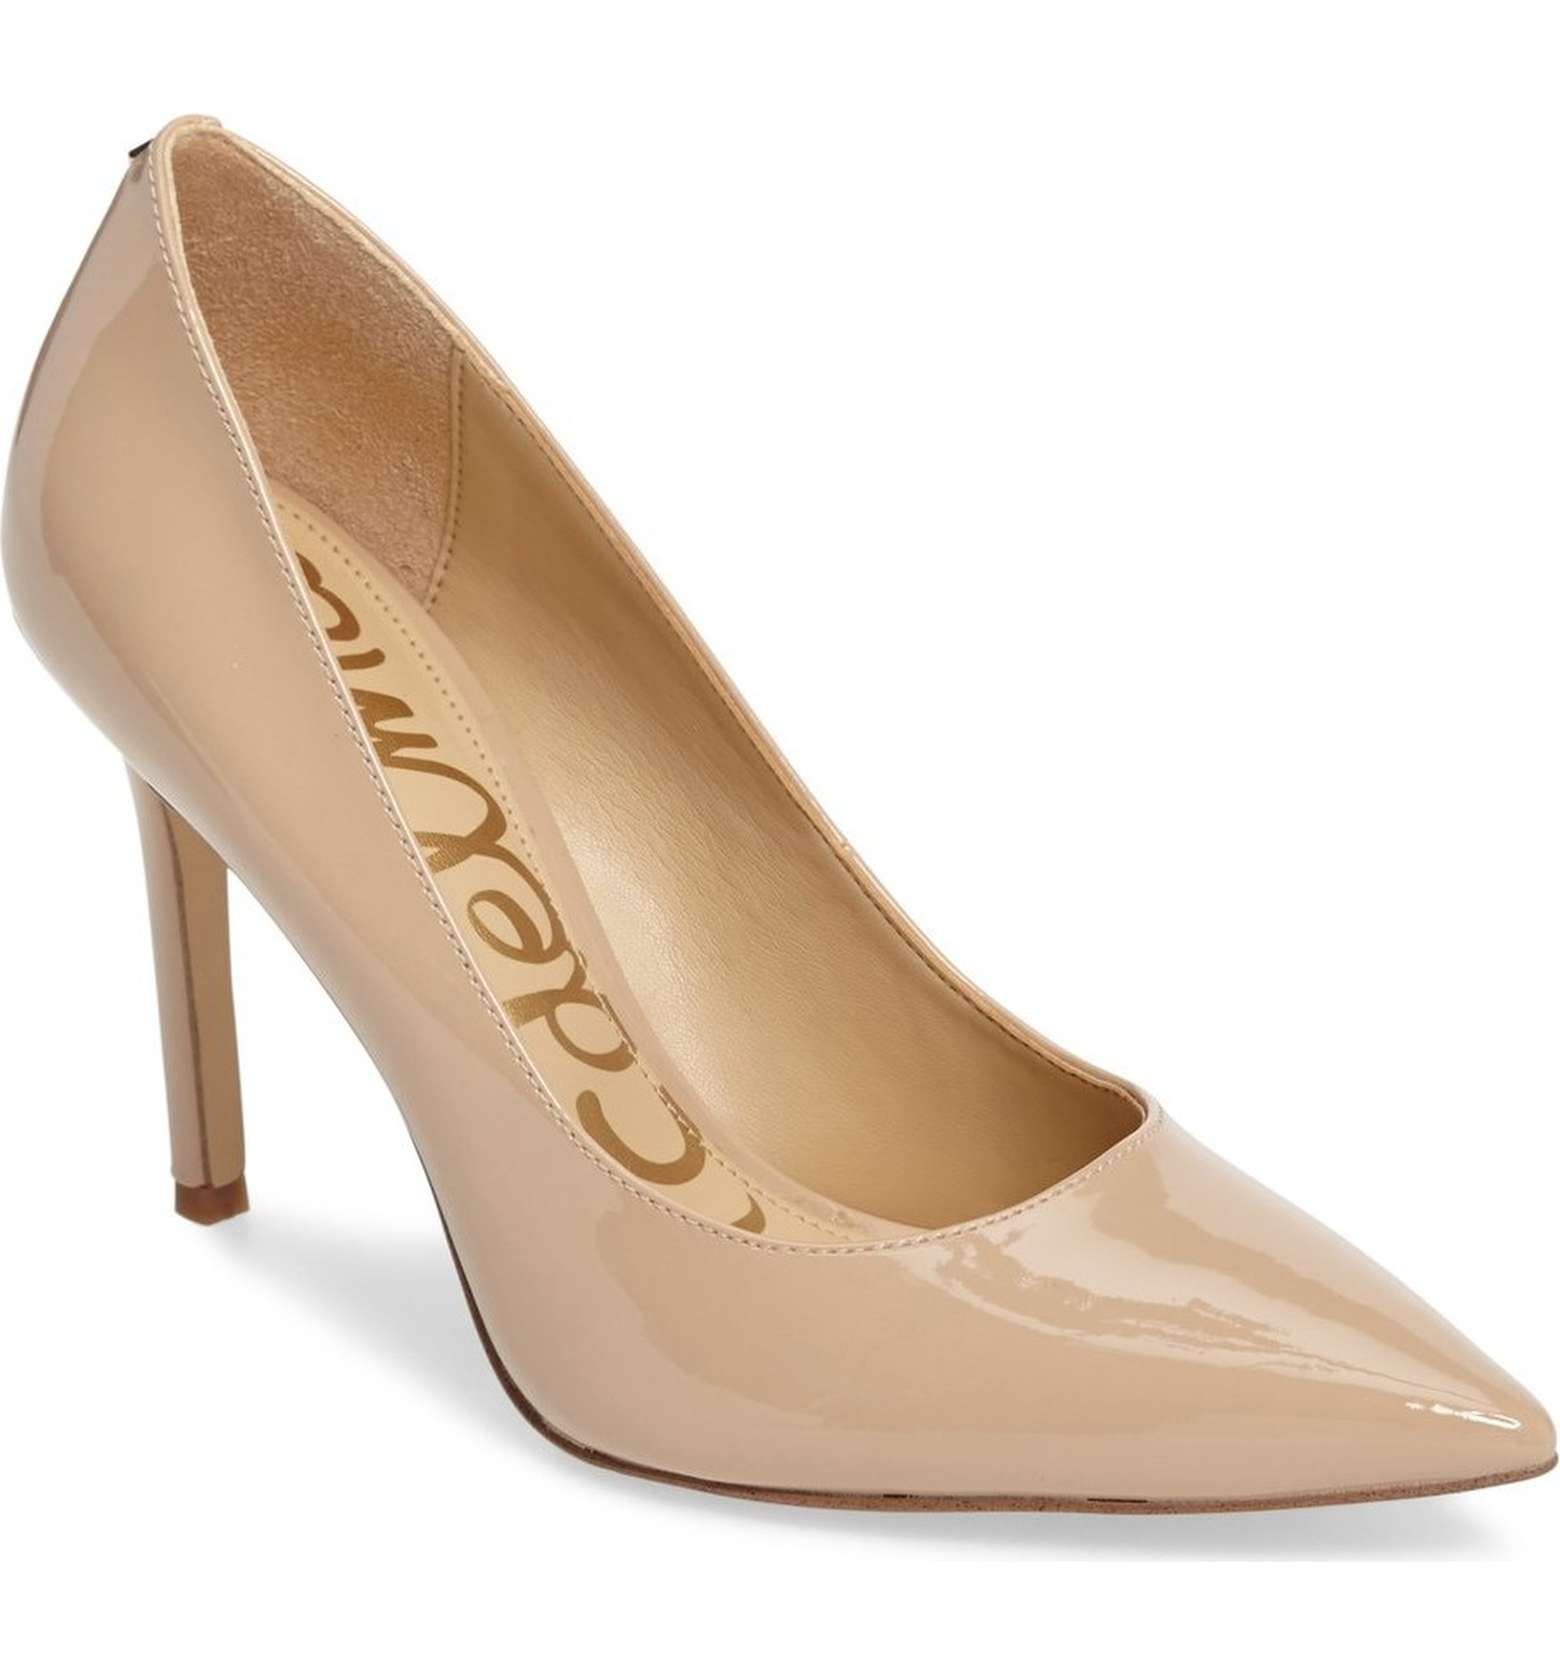 Sam Edelman's Hazel Pointy Toe Pump